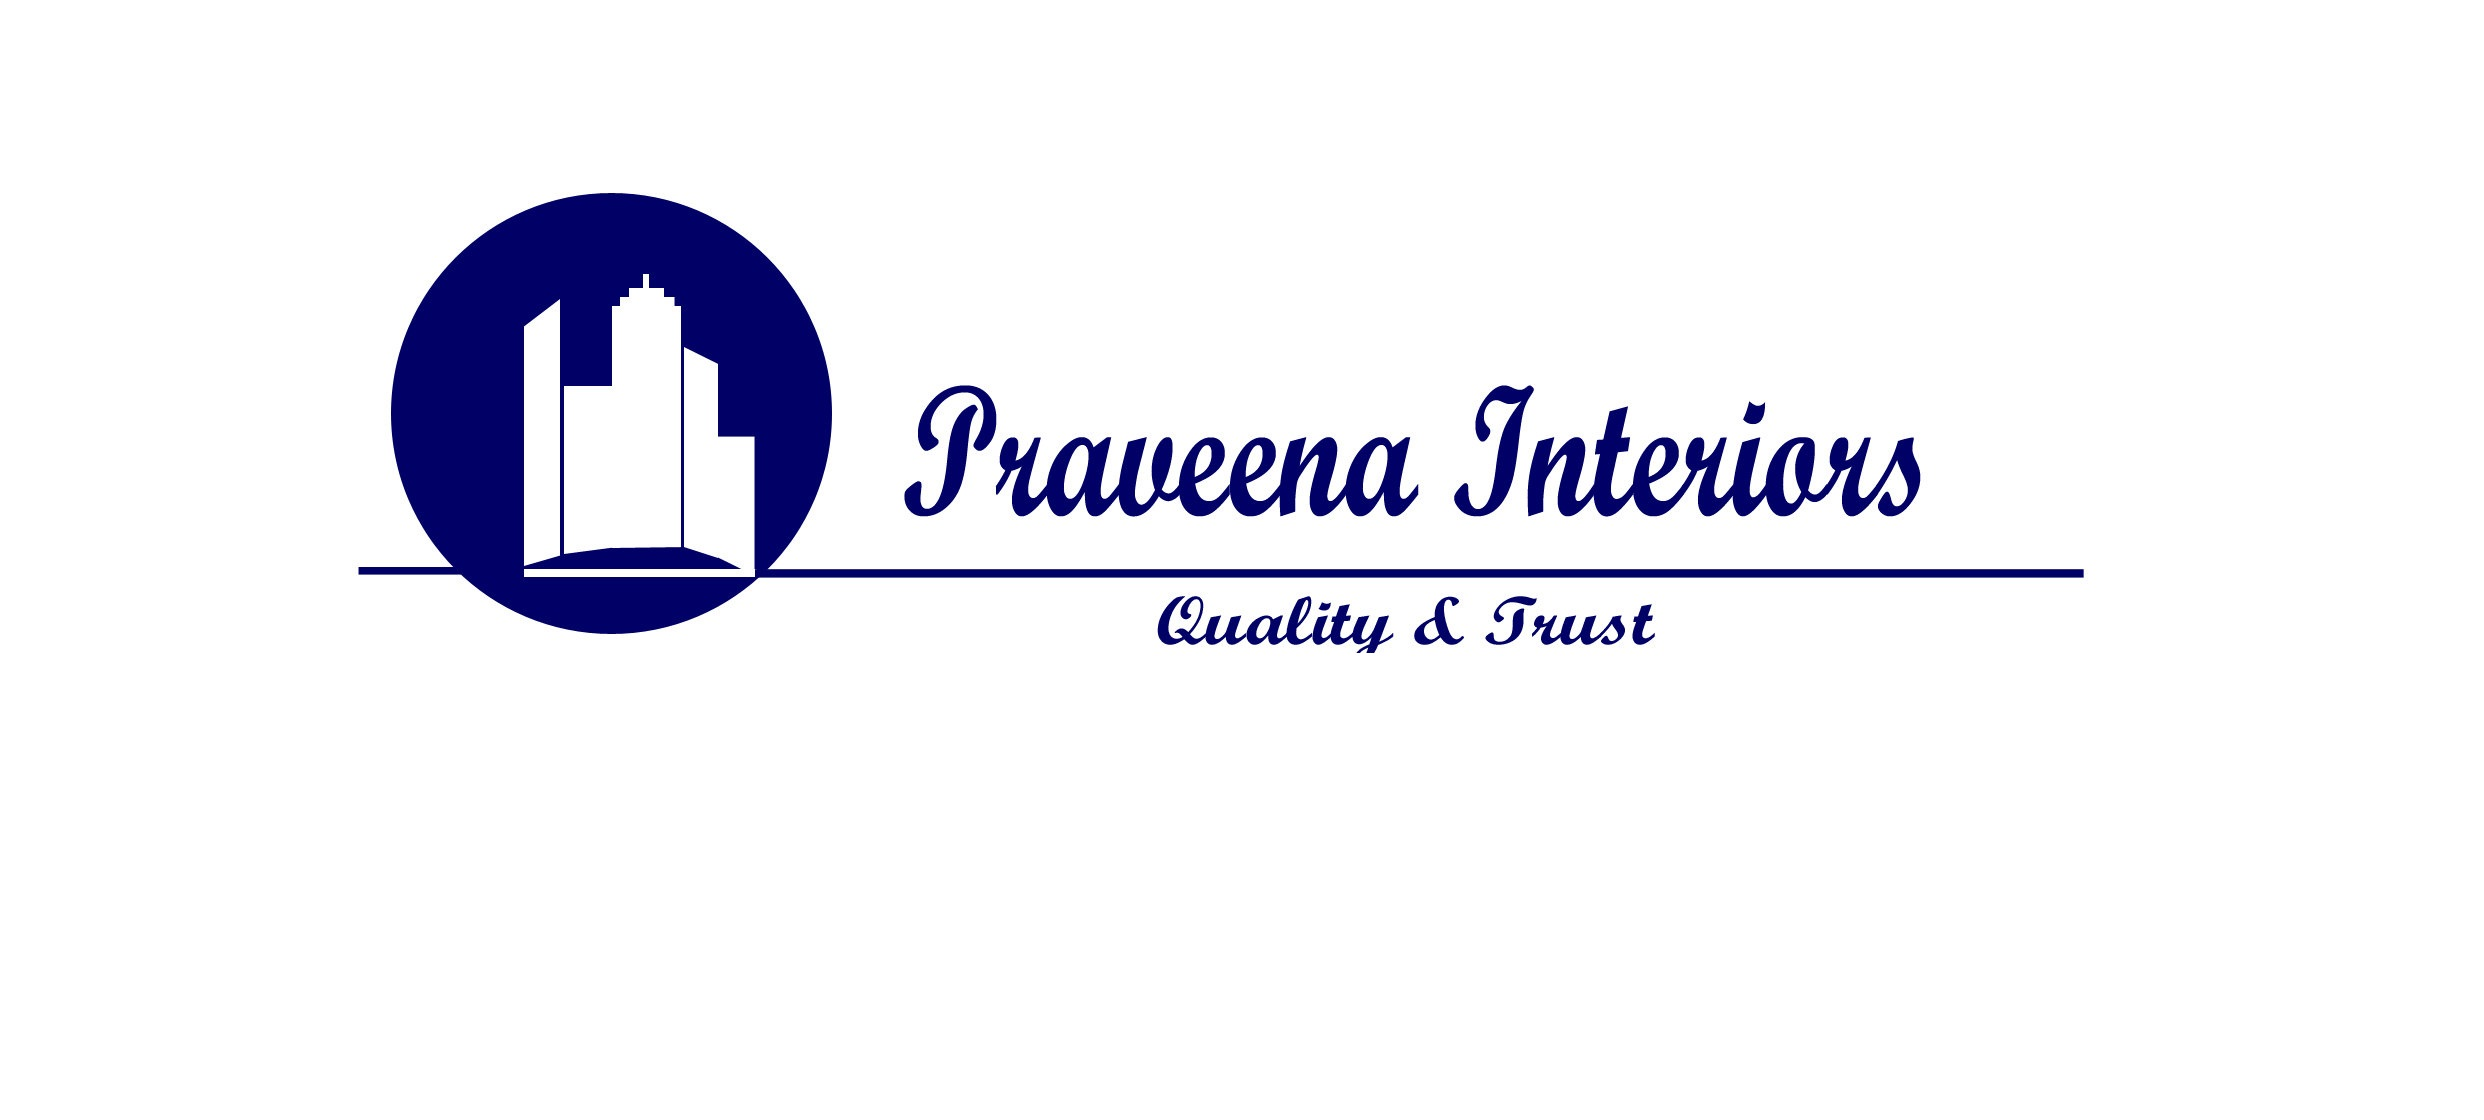 Shree Praveena Interiors - logo